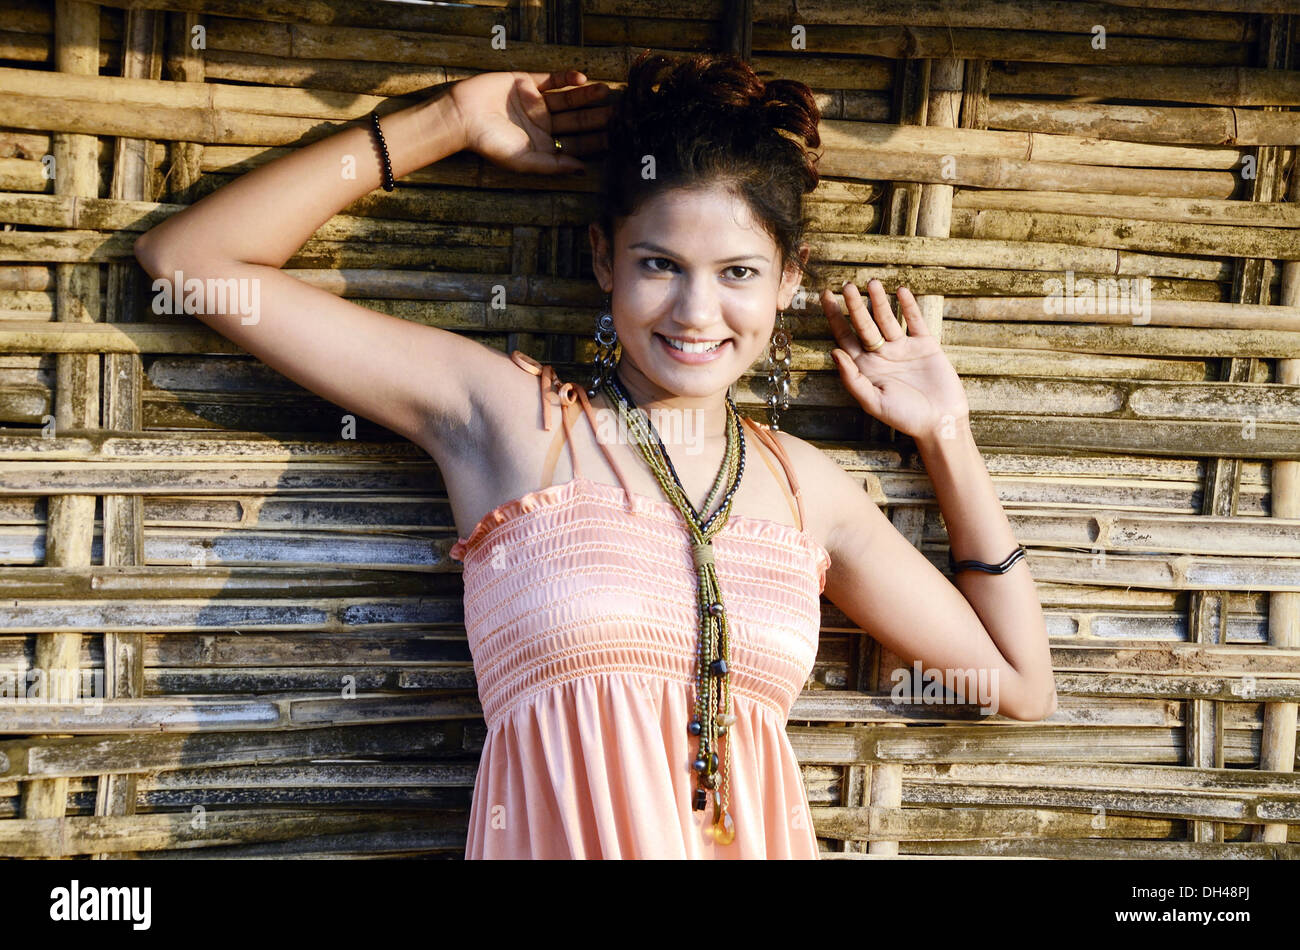 girl giving pose in front of bamboo hut background at Rajahmundry Andesh Pradesh India MR#704K - Stock Image